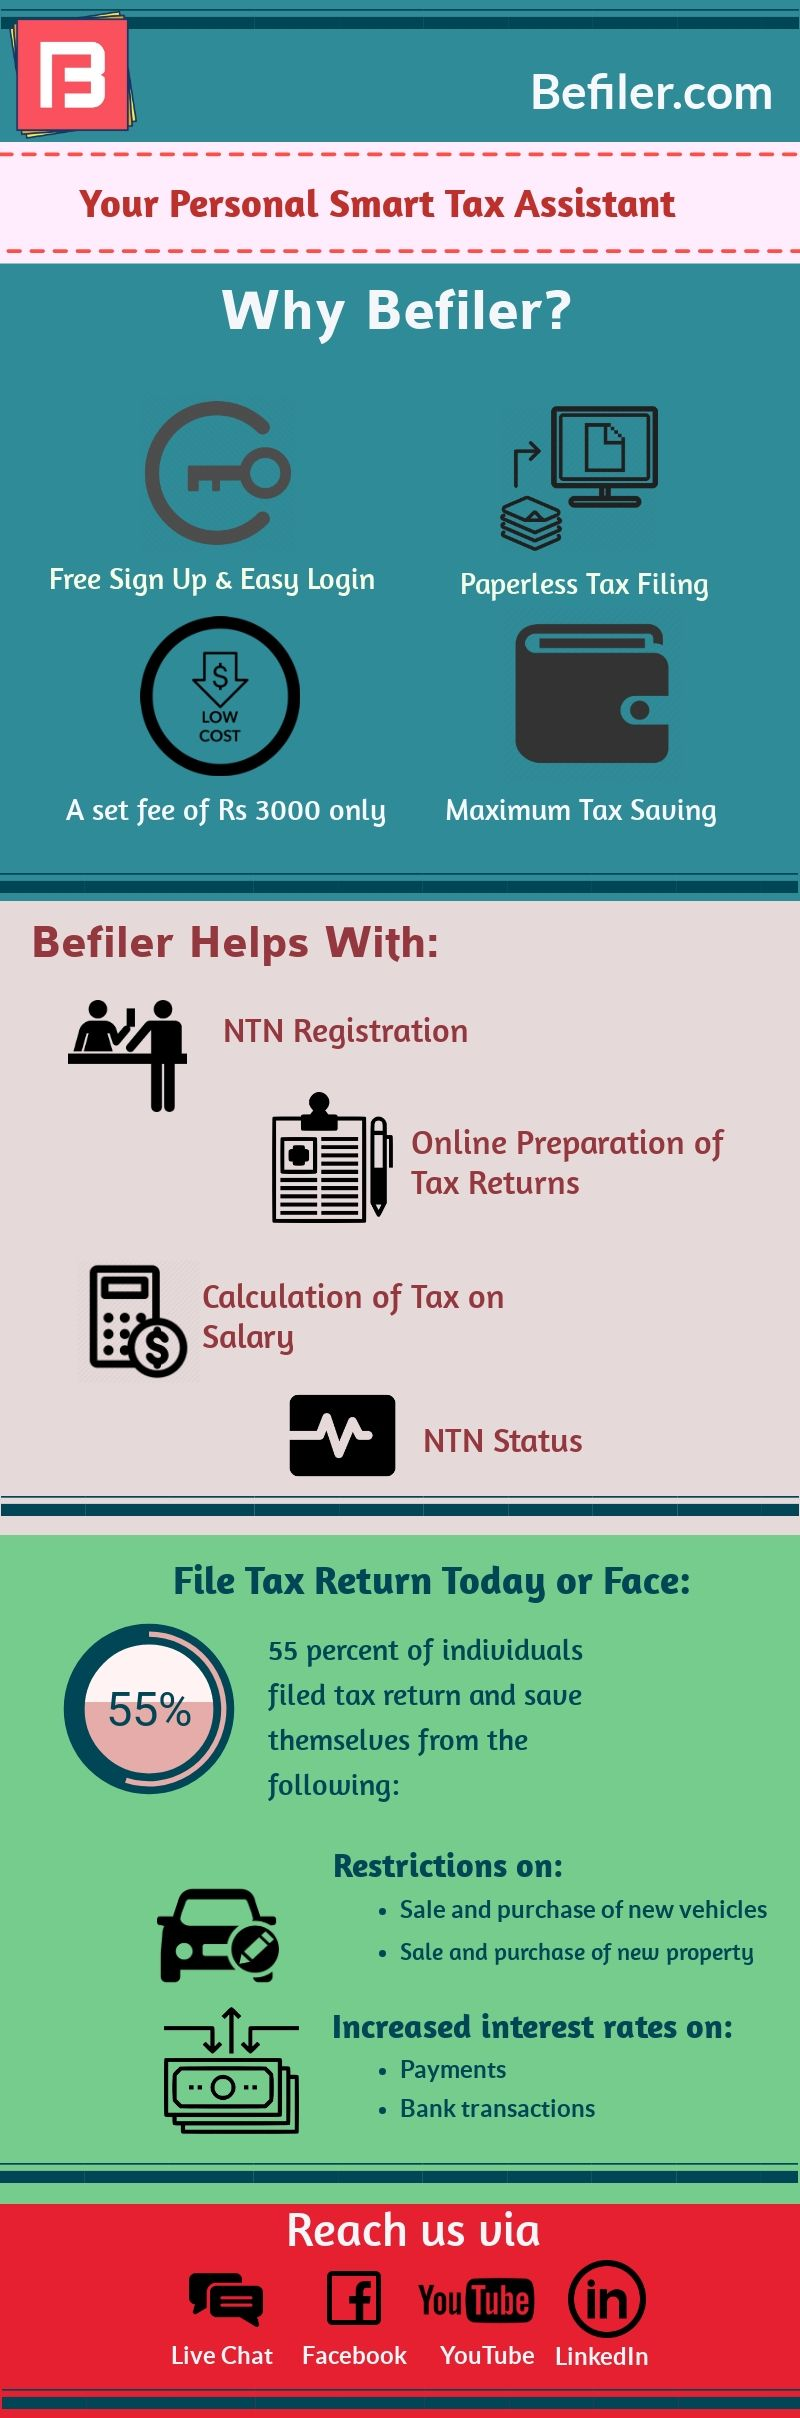 Your Smart Tax Assistant for Tax Return Filing